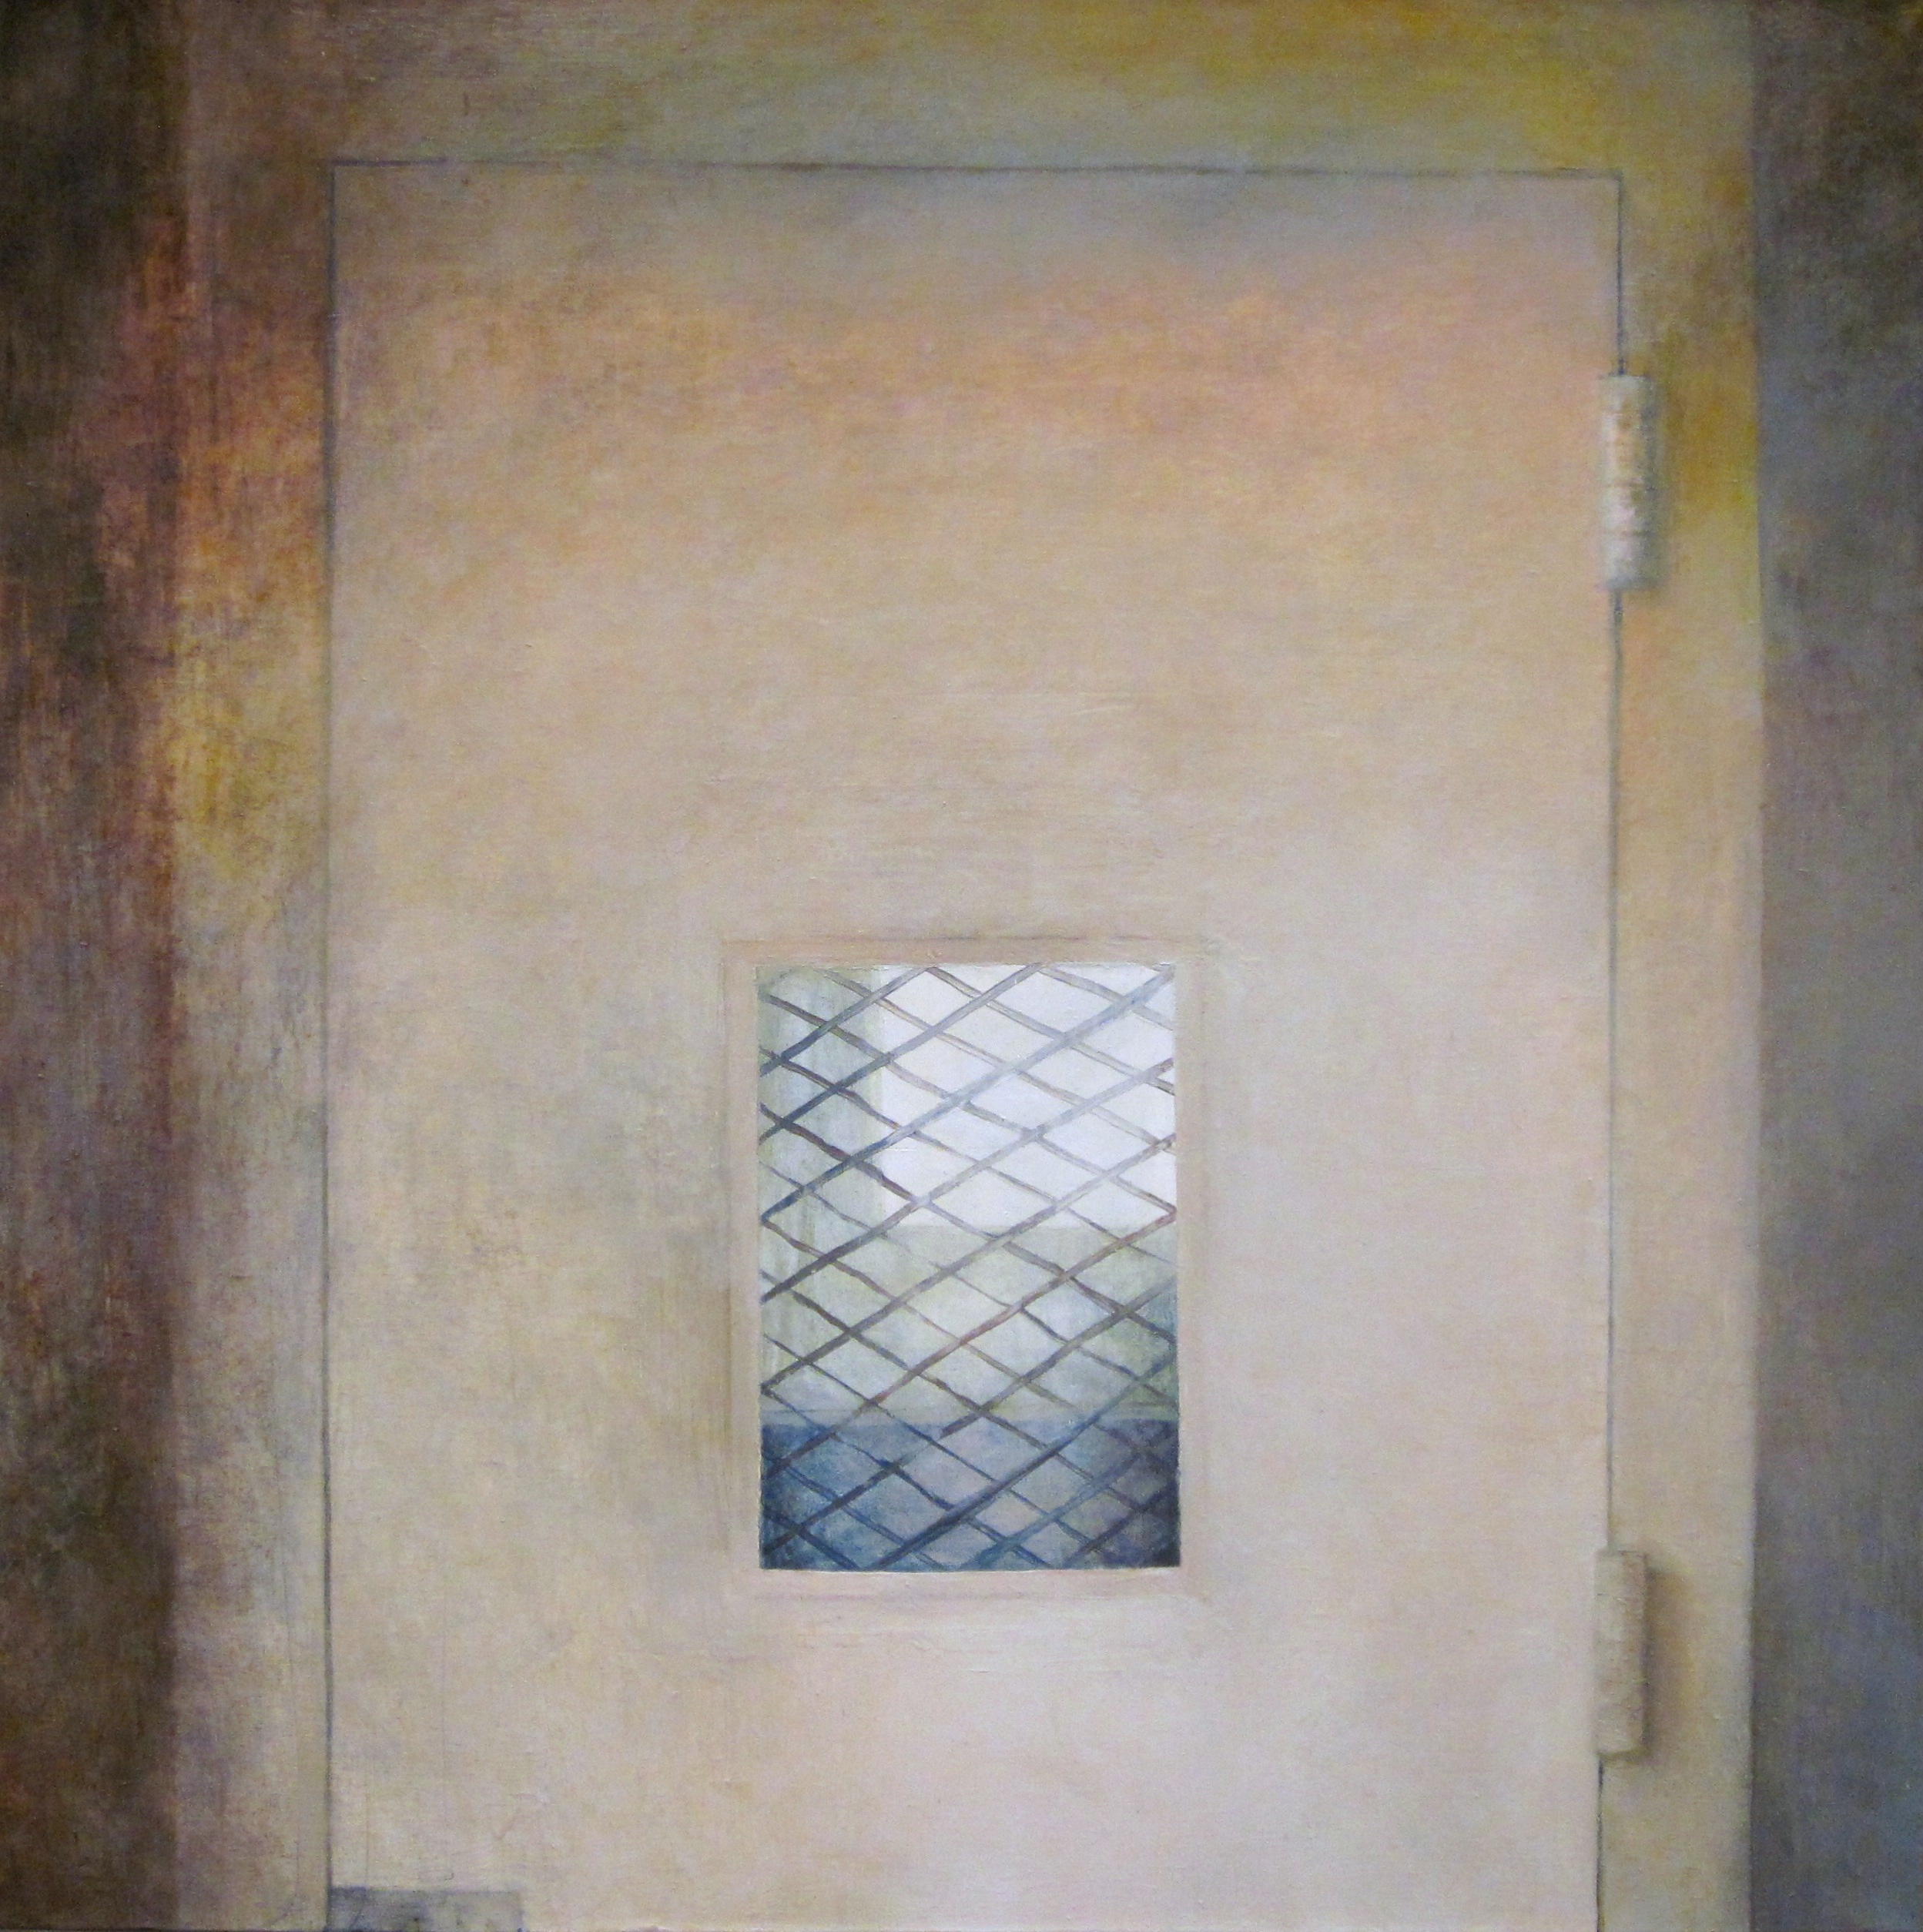 In, Oil on Canvas, 36 x 36 inches, 2011